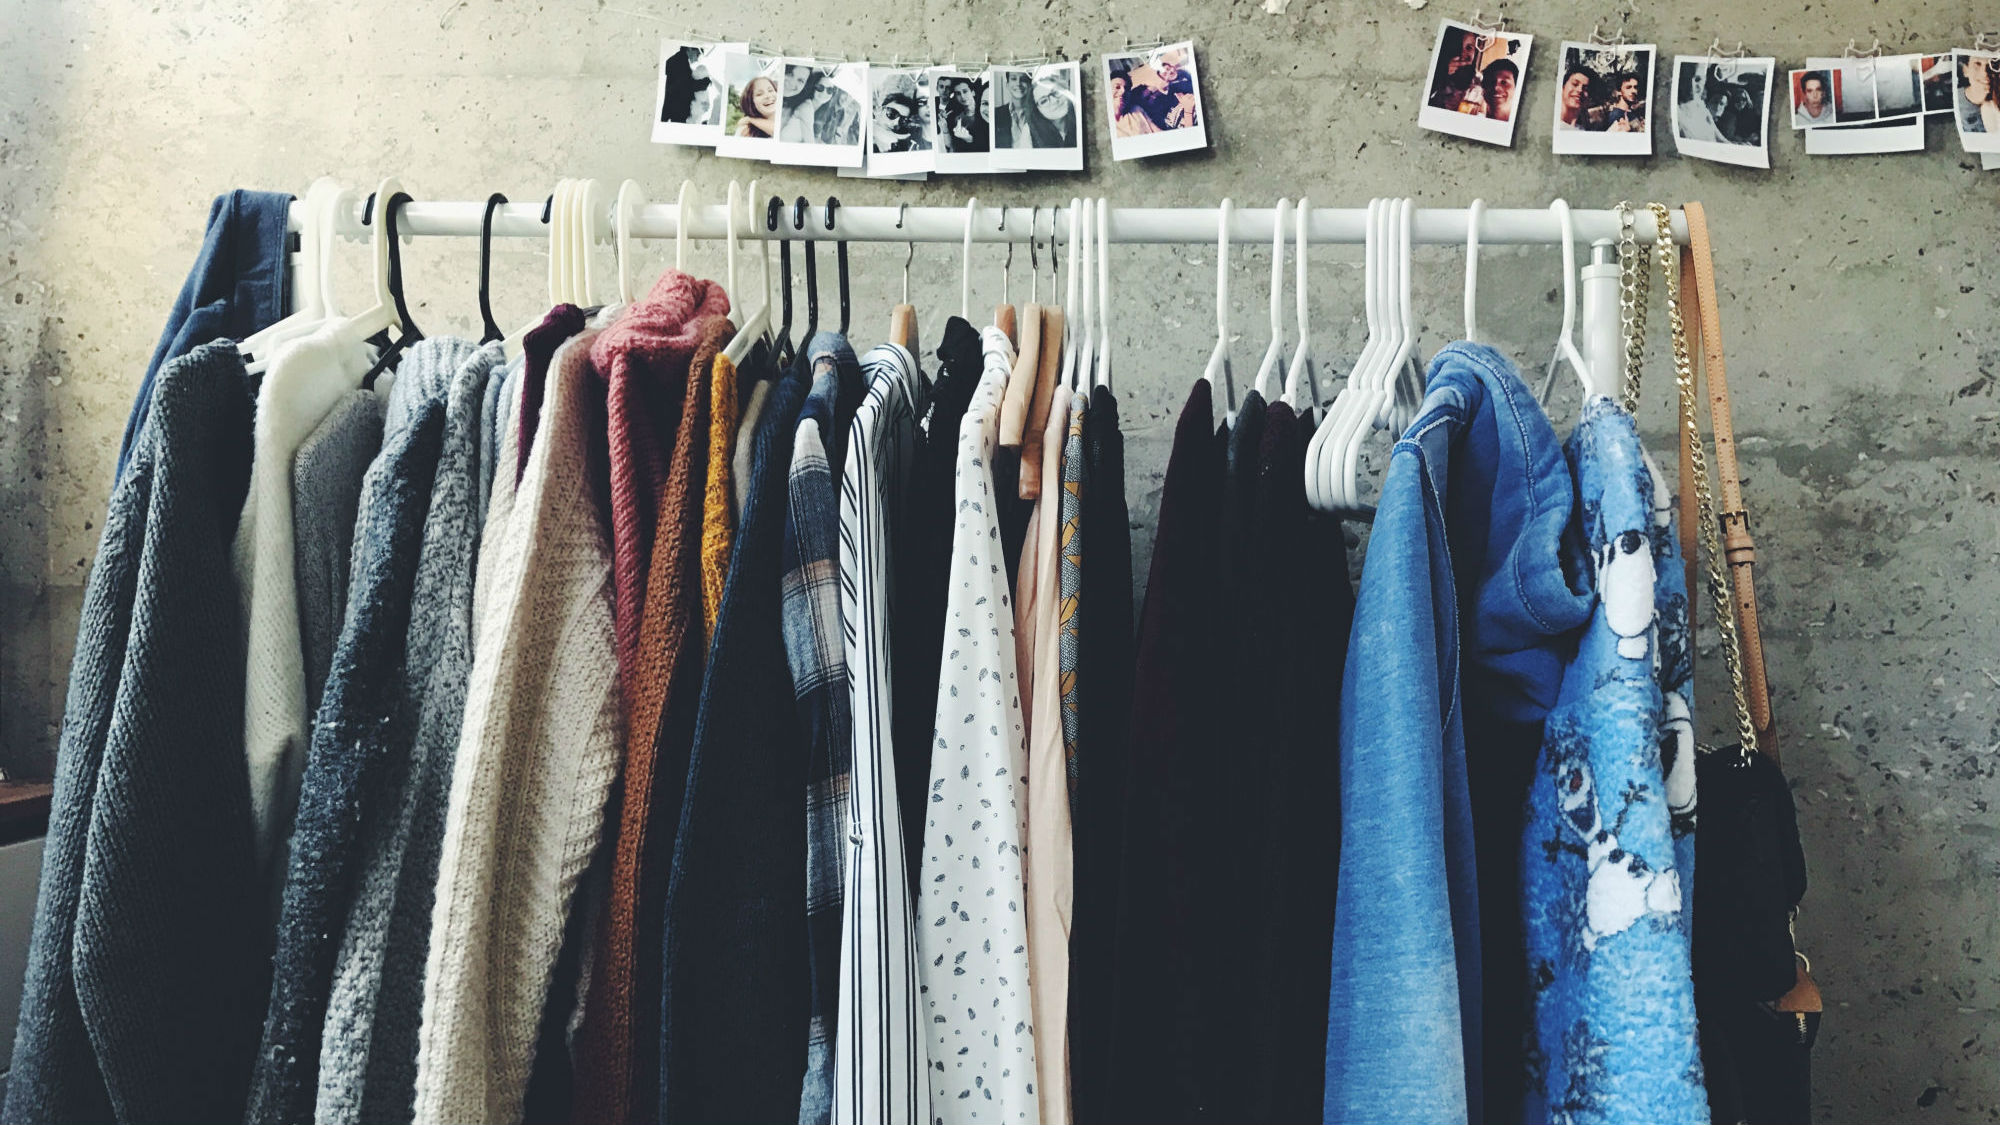 Good news, the eco-friendly fashion rental industry is booming